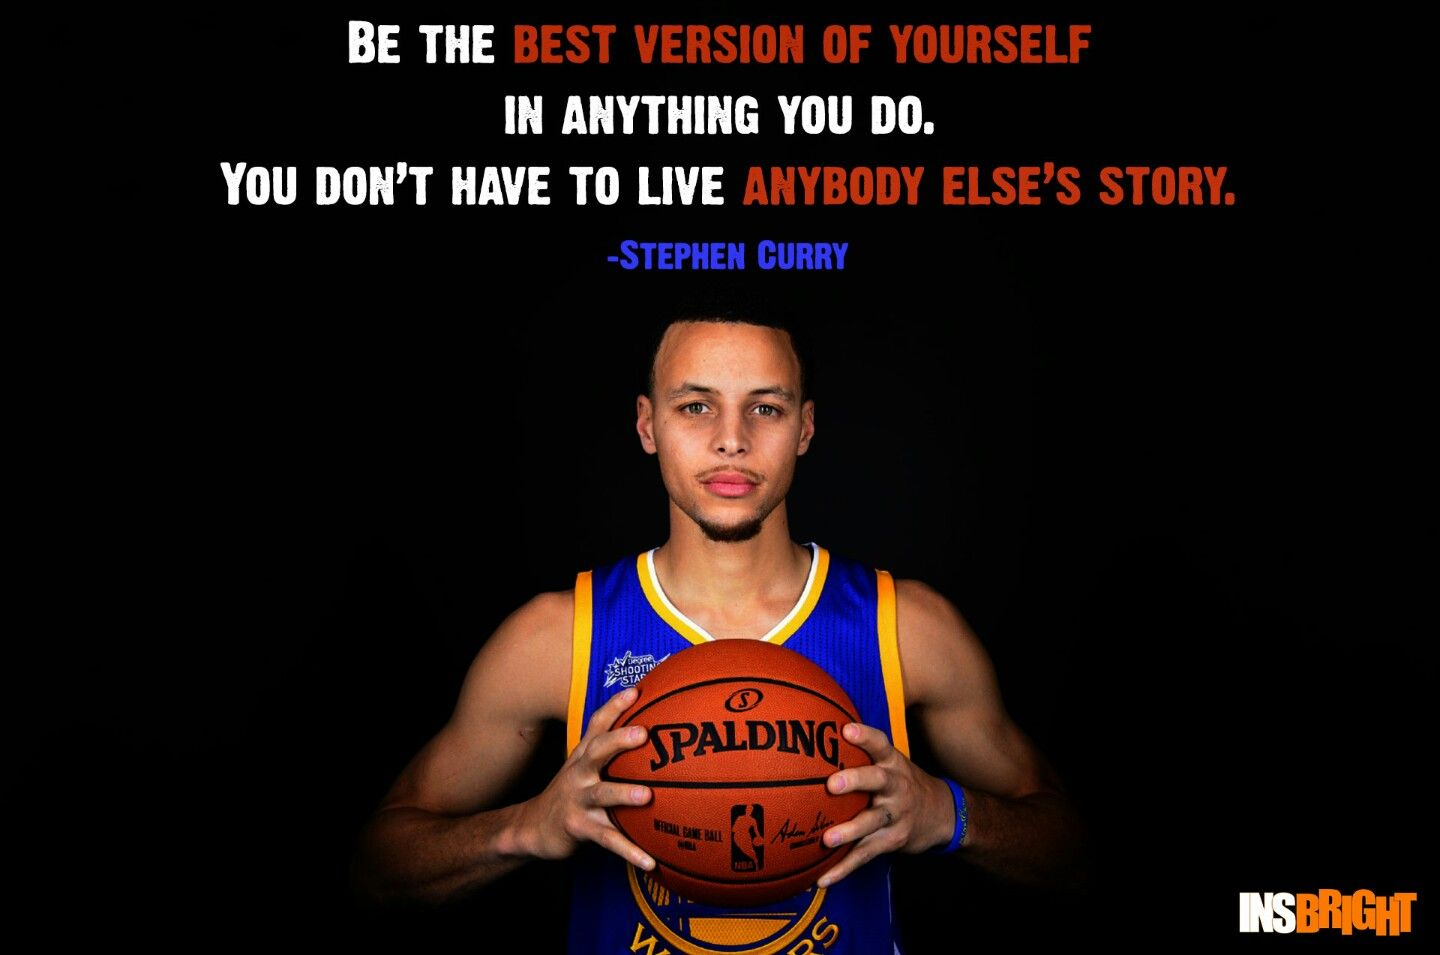 Love This Guy Basketball Quotes Stephen Curry Basketball